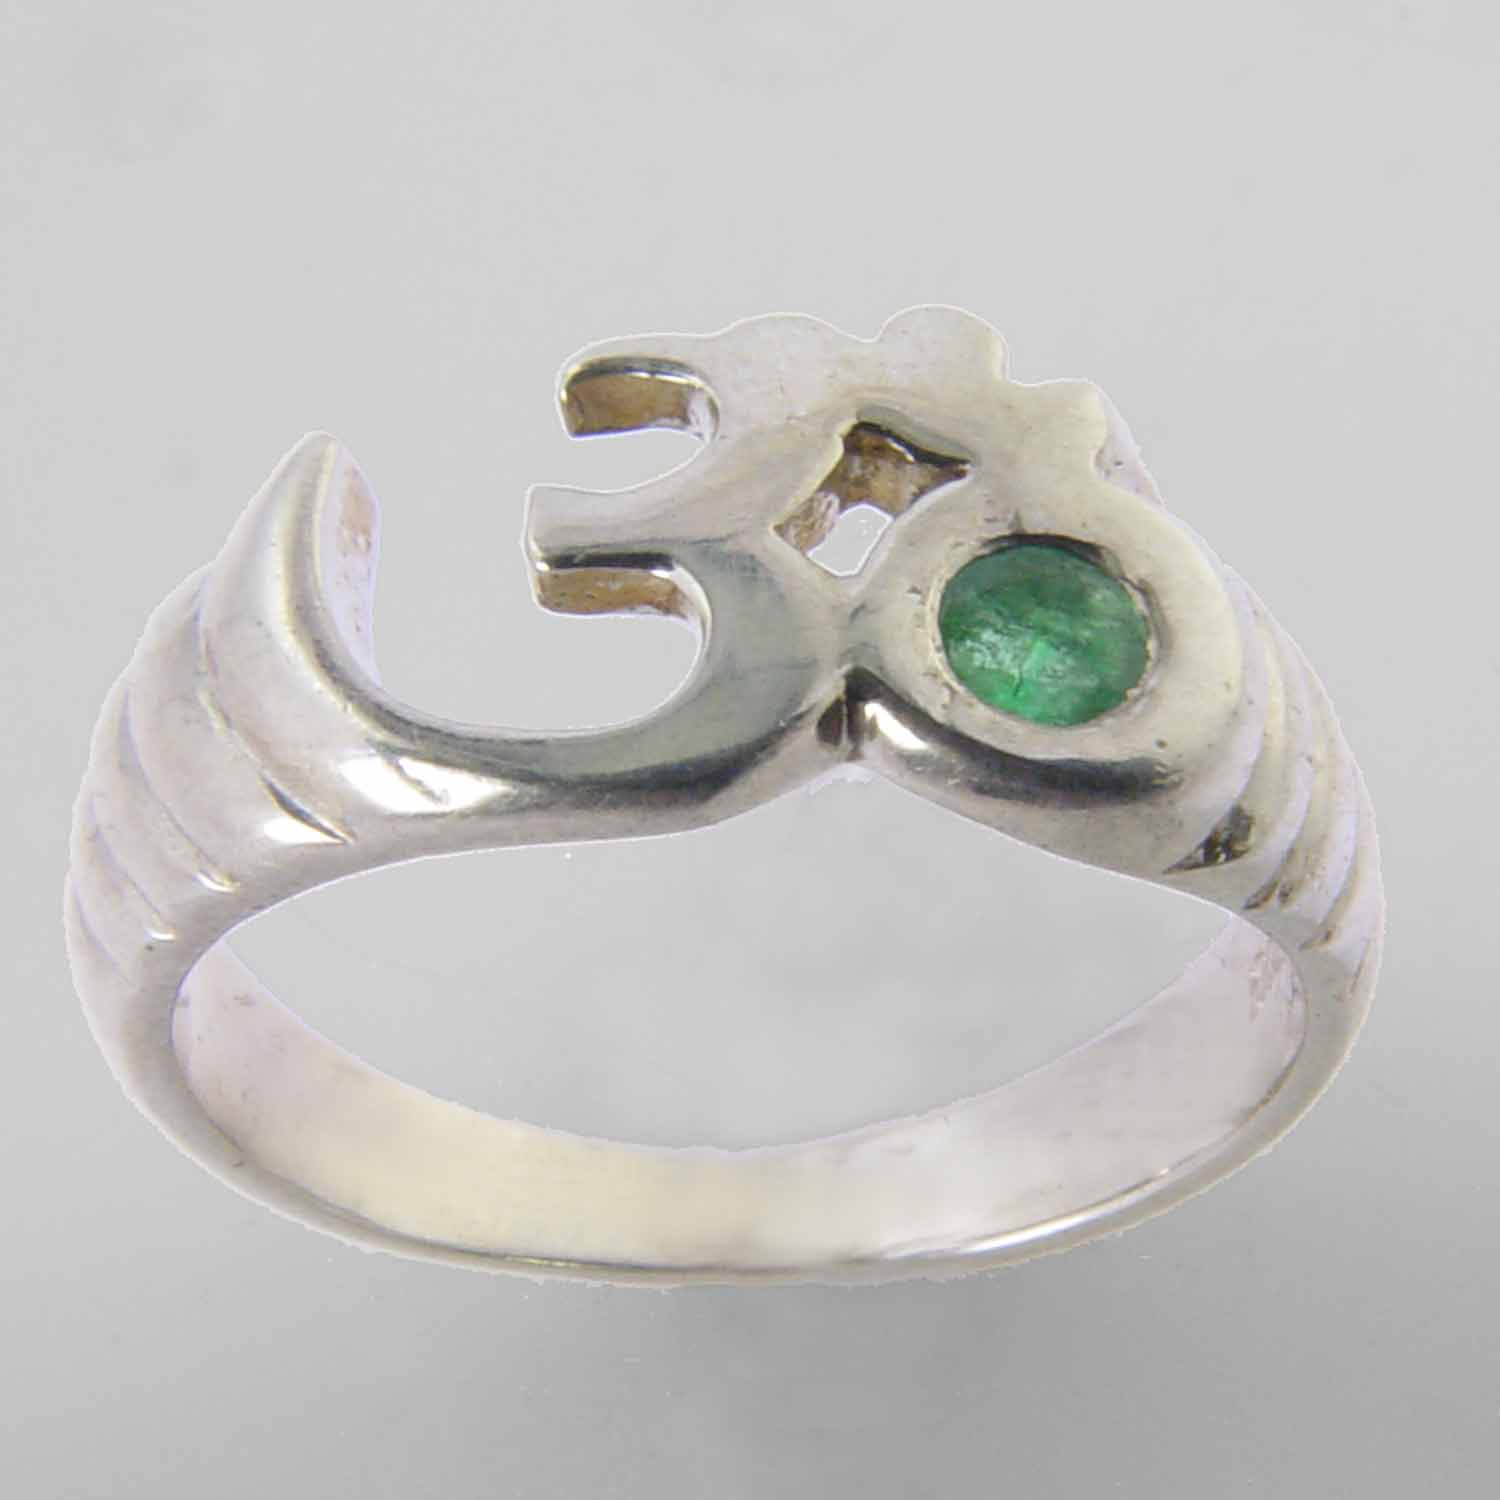 Aum Ring with Small Faceted Emerald in Sterling Silver, Size 6.5